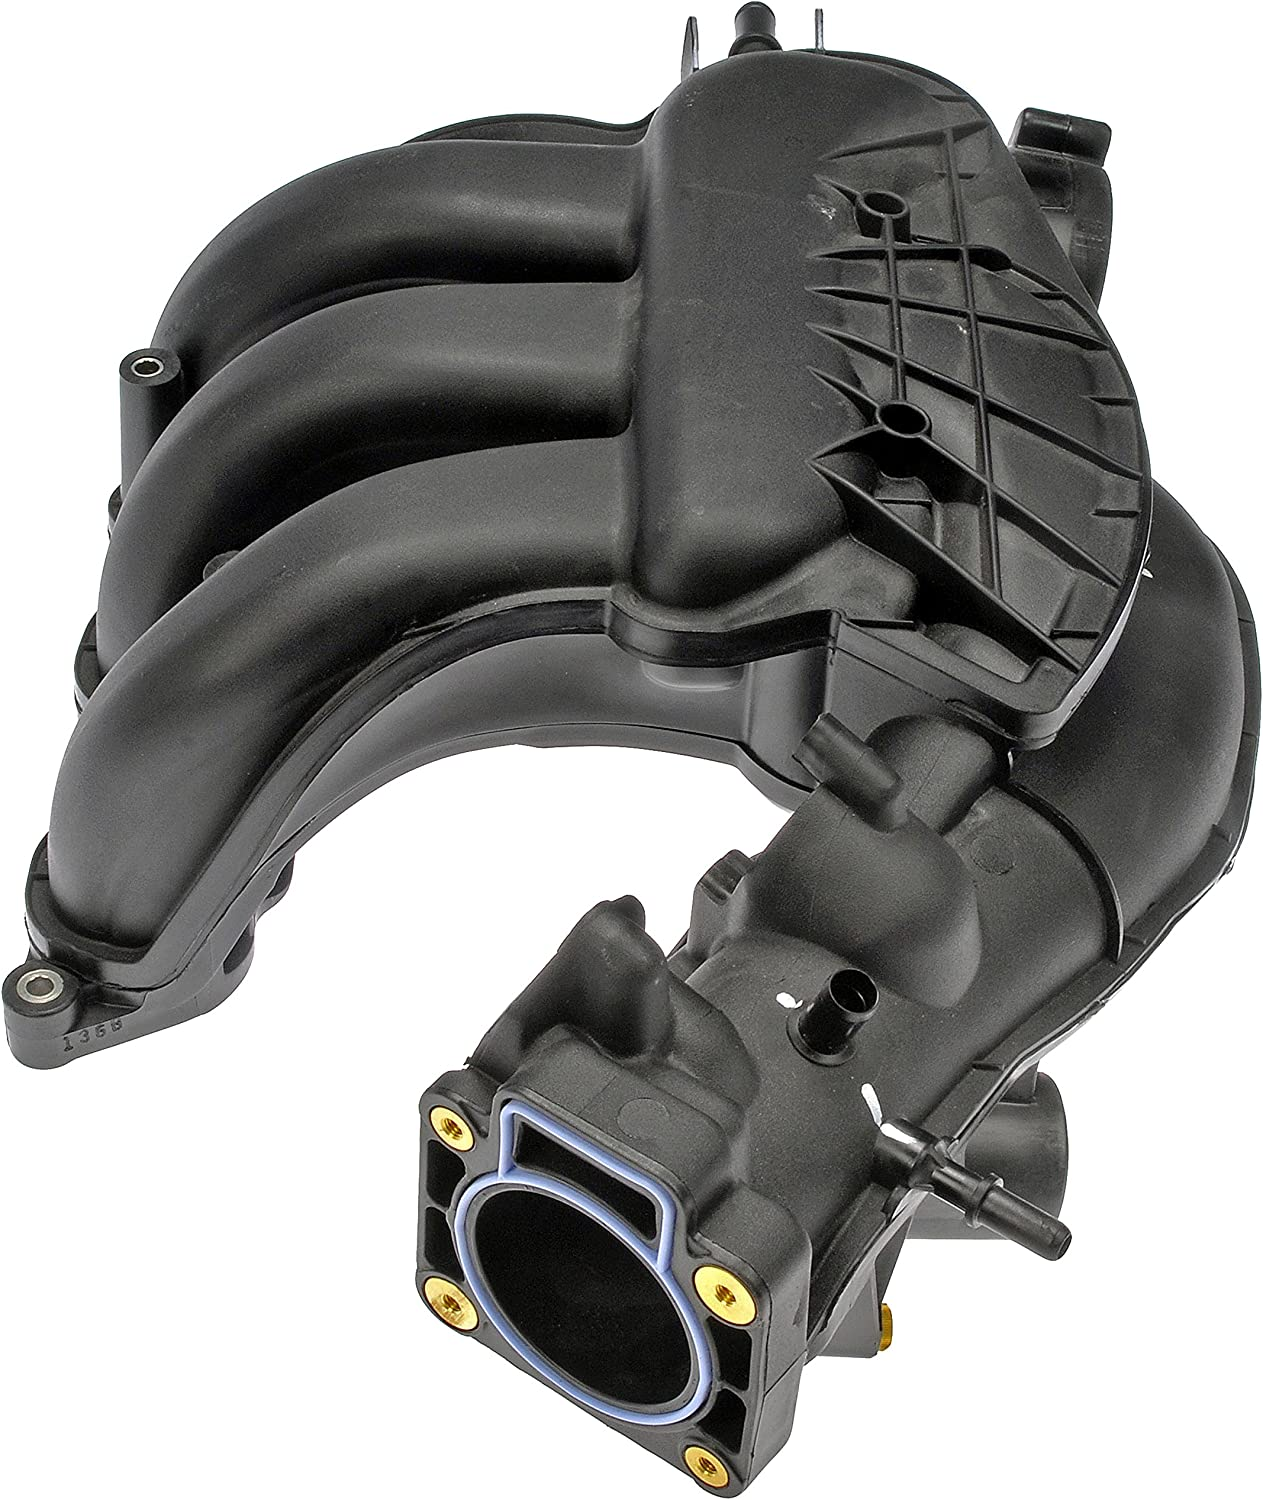 Dorman OE Solutions 615-281 Lower Aluminum Intake Manifold for Select Models